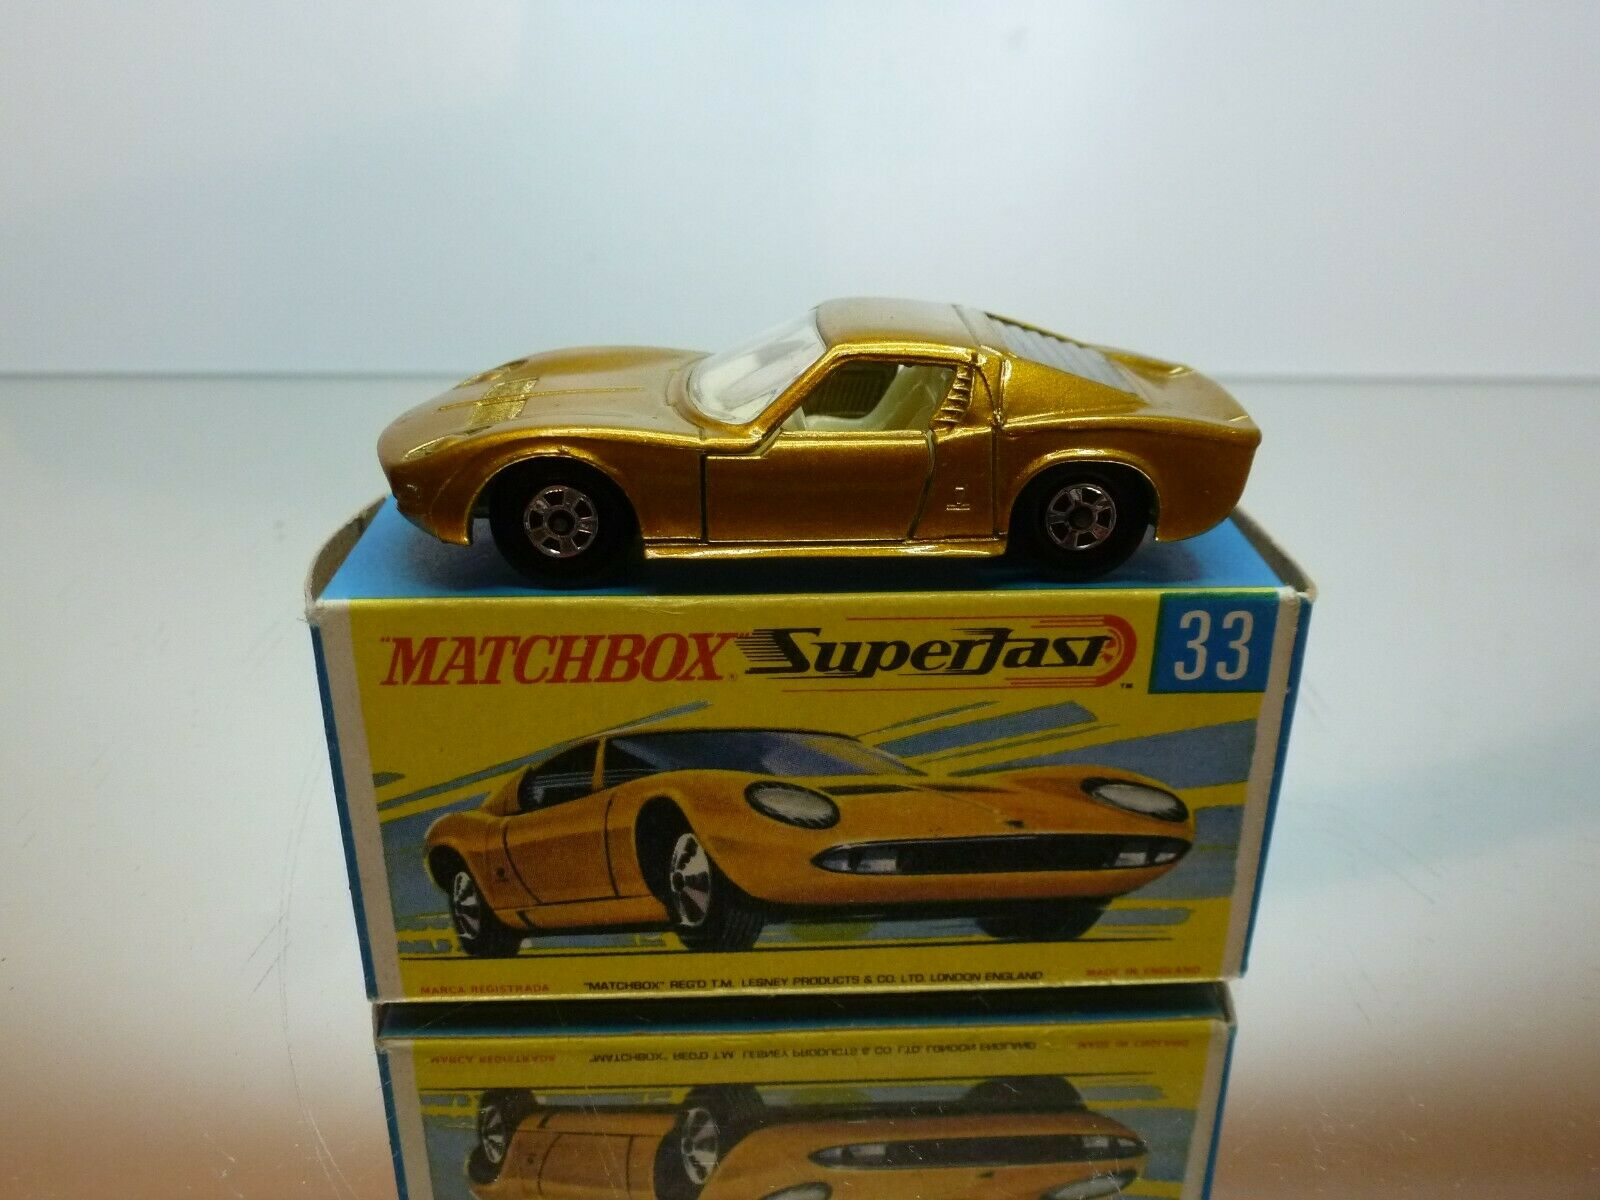 MATCHBOX SUPERFAST 33 LAMBORGHINI MIURA P400 - or METALLIC - VERY GOOD IN BOX